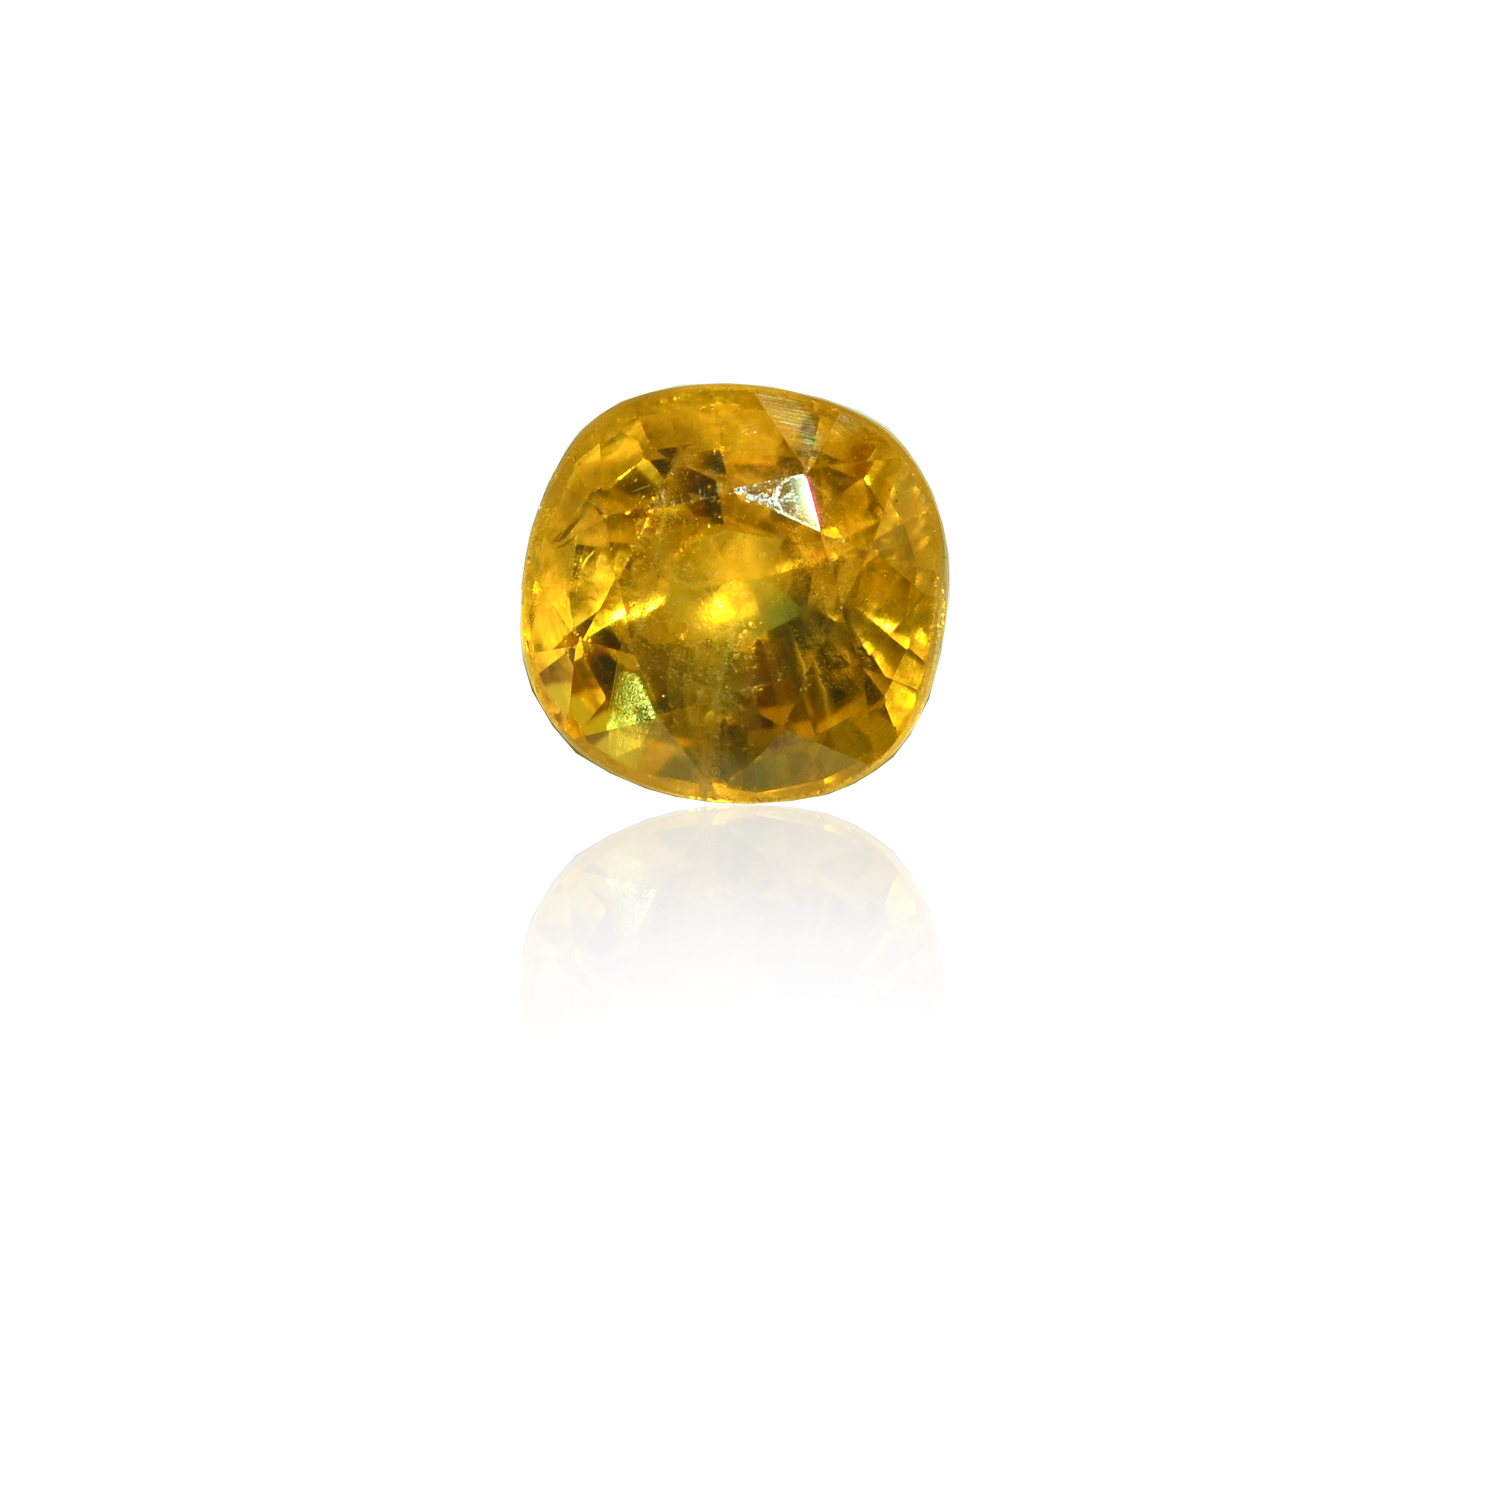 6.15 CARAT, OVAL MIXED CUT NATURAL YELLOW SAPPHIRE